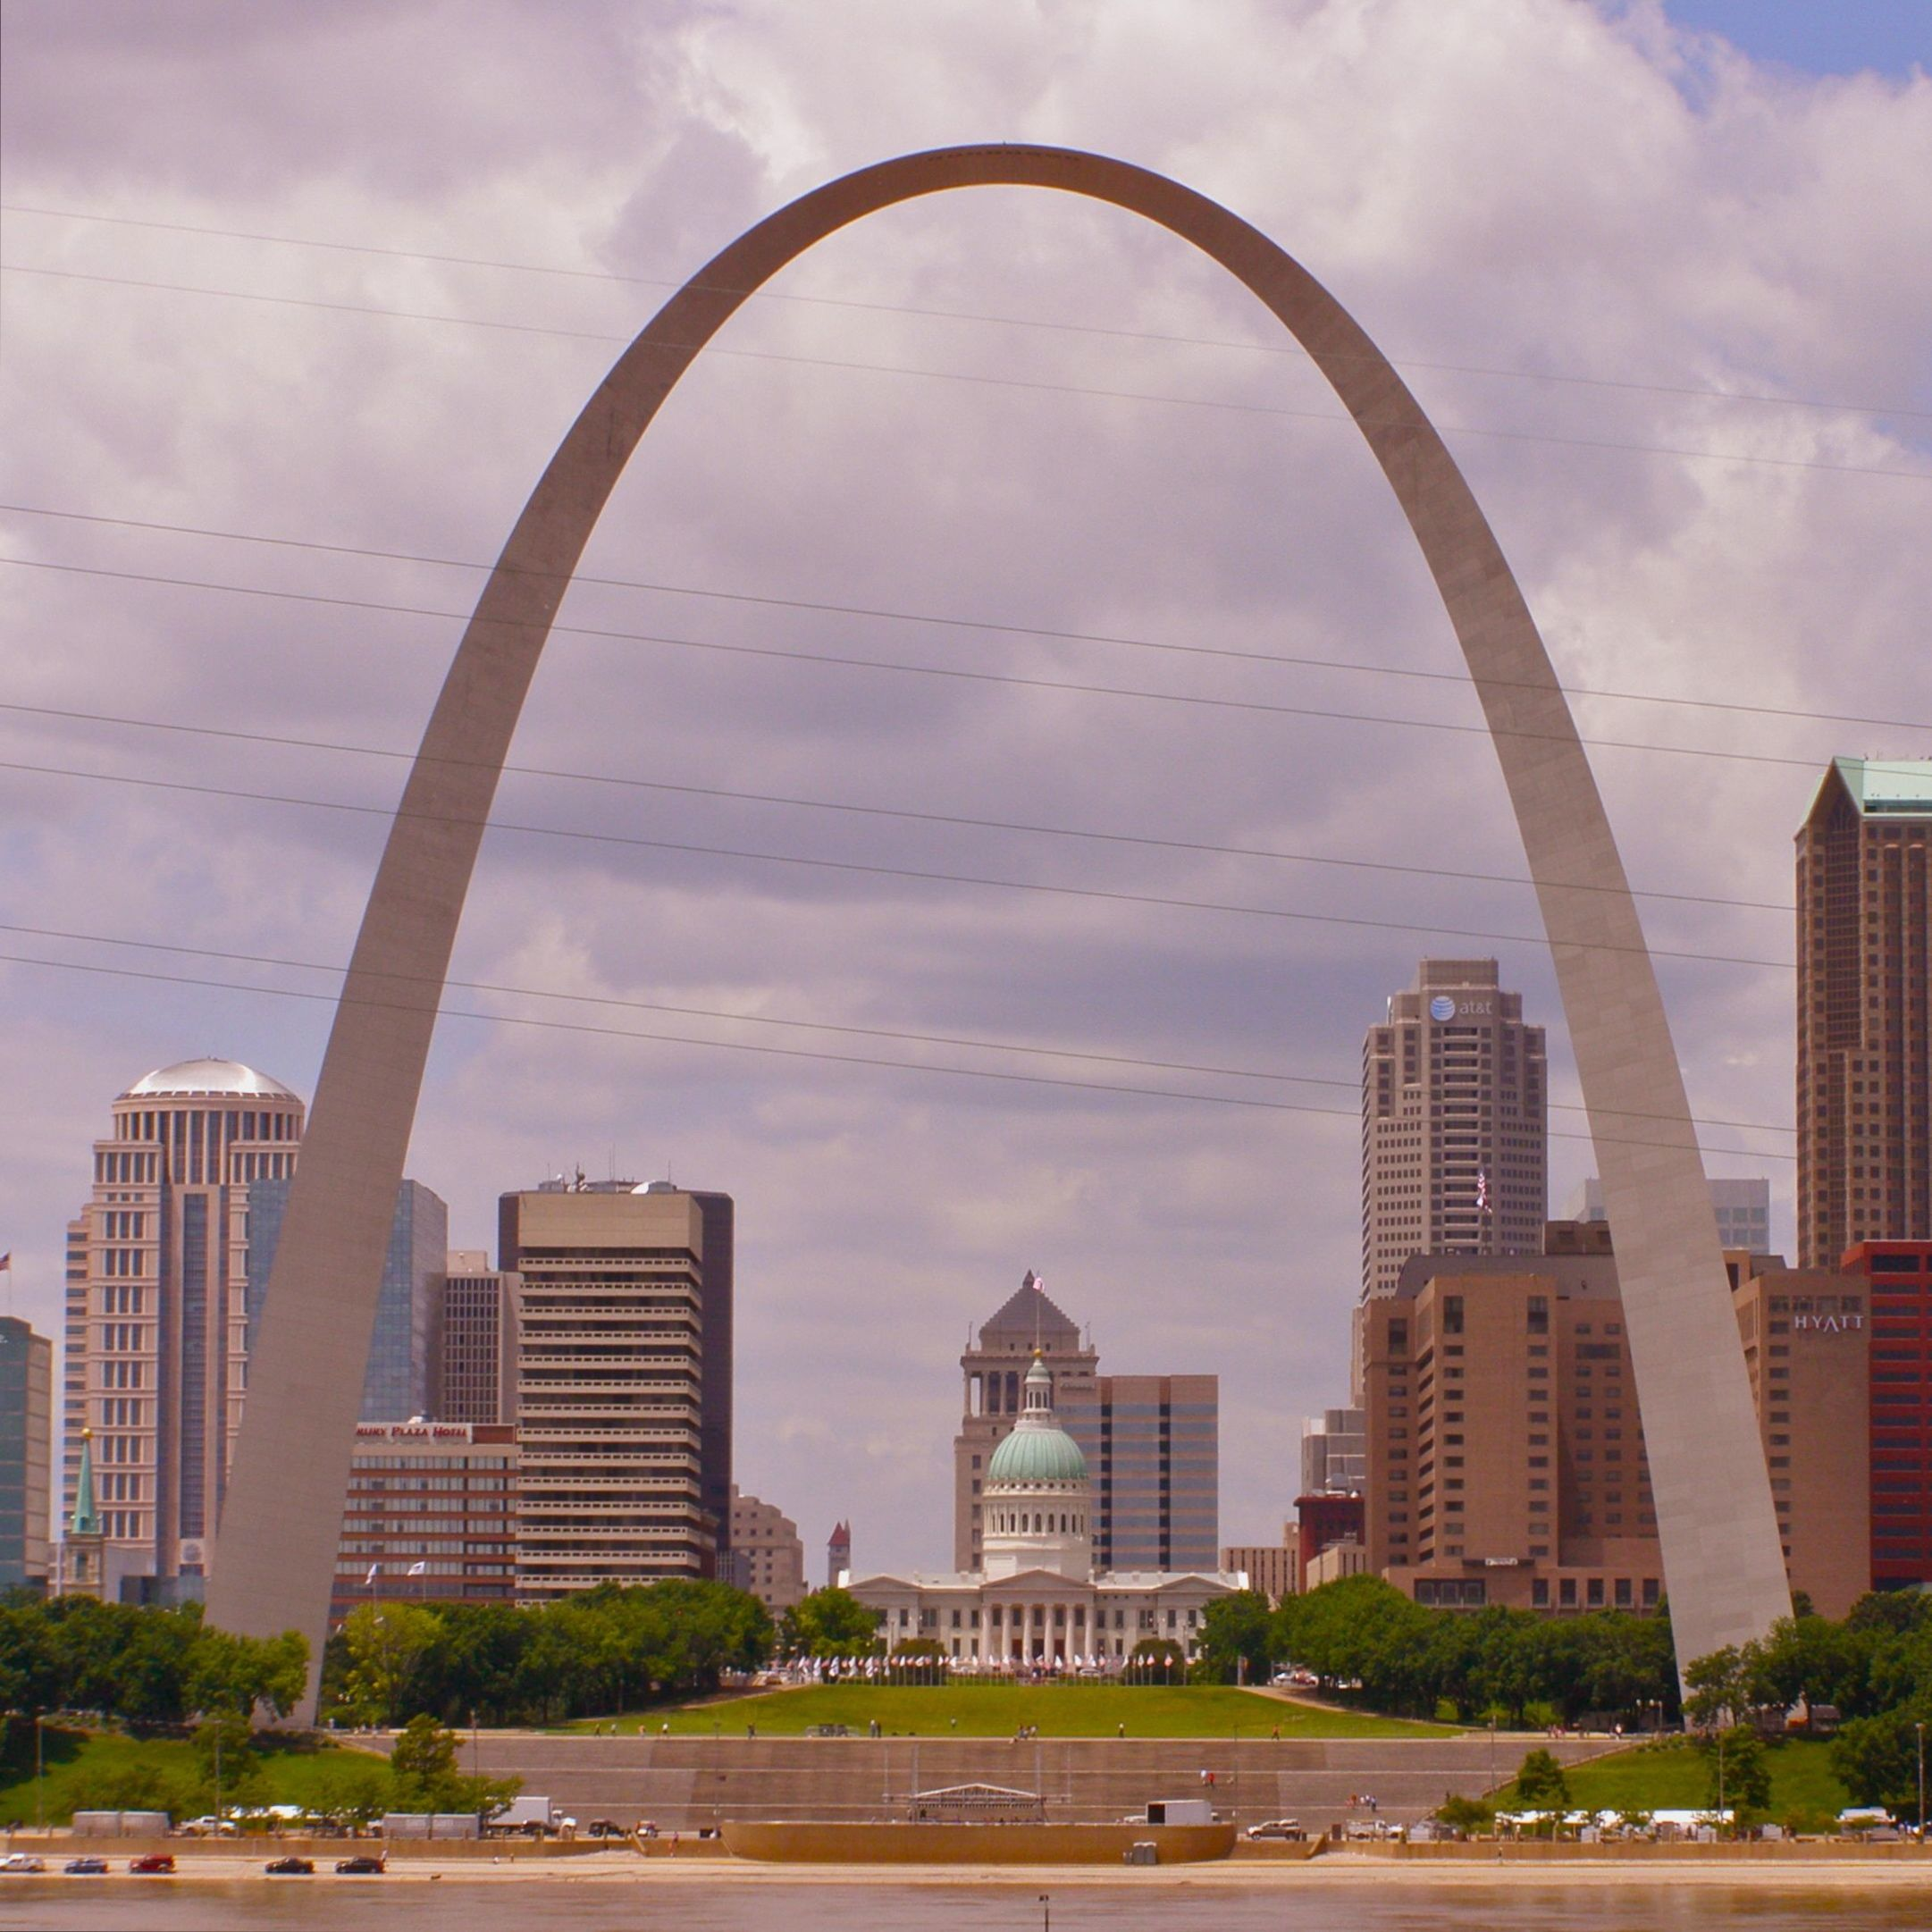 St louis arch scheduled for demolition early fall 2015 for St louis architecture